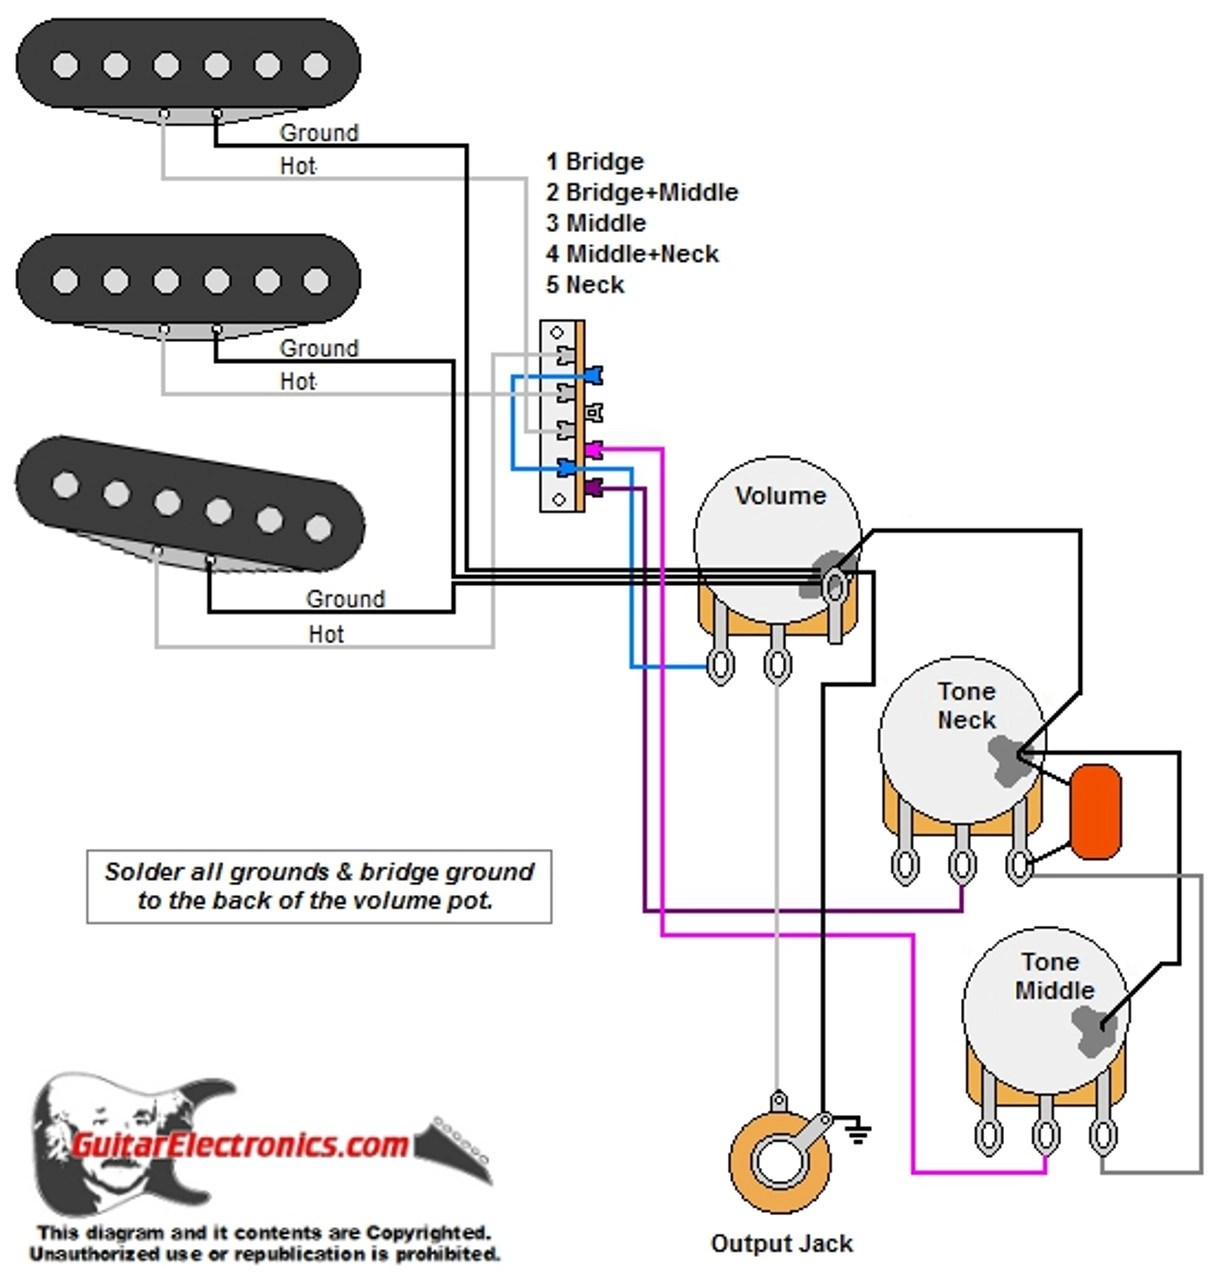 small resolution of fender strat wiring diagram 5 way switch strat style guitar wiring diagramwdusss5l1201 80483 1481740458 jpg c u003d2